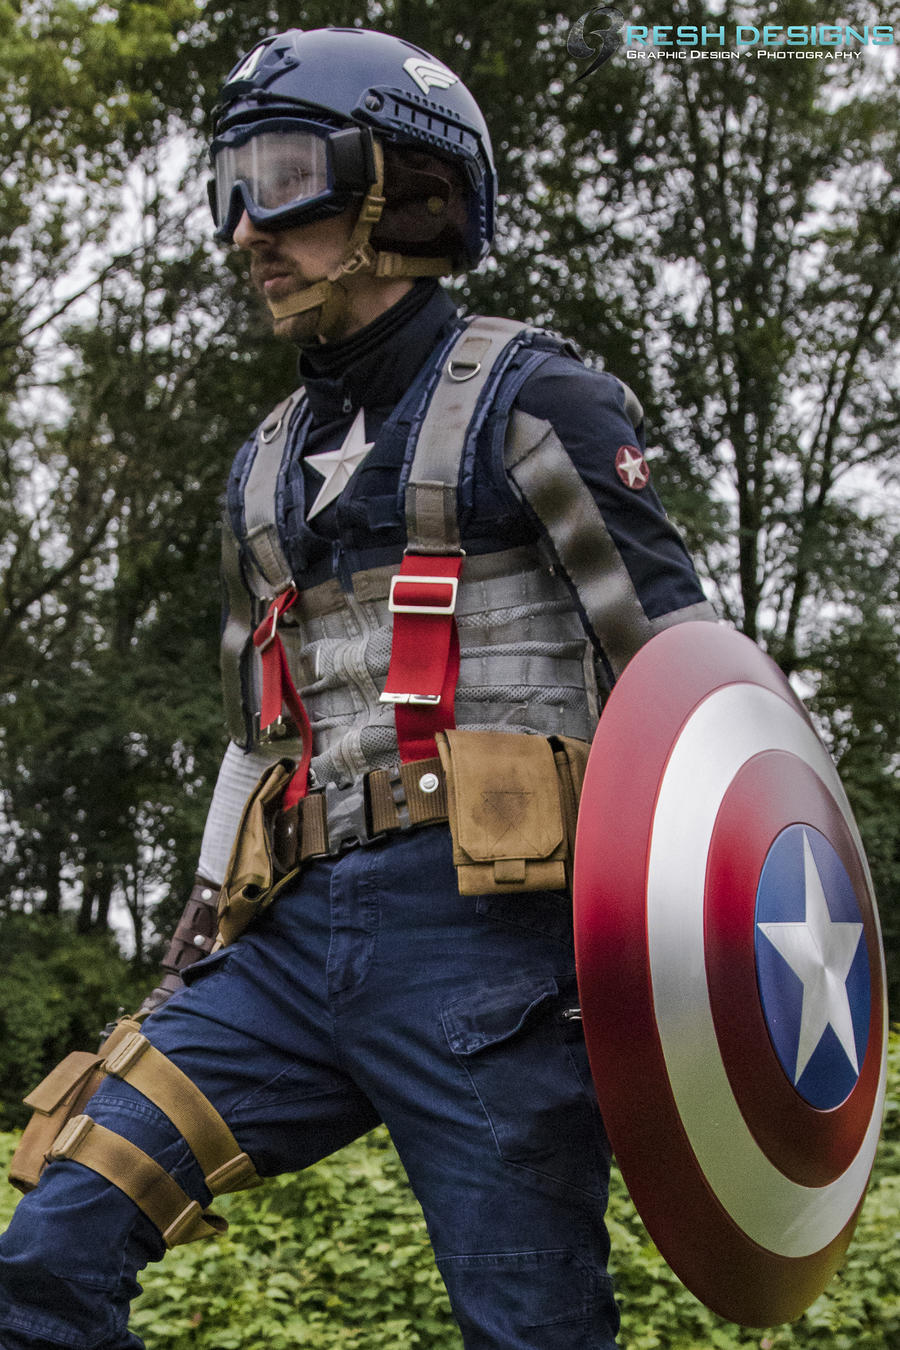 Matthew Resh AKA FResh Tactics Cosplay as Captain America